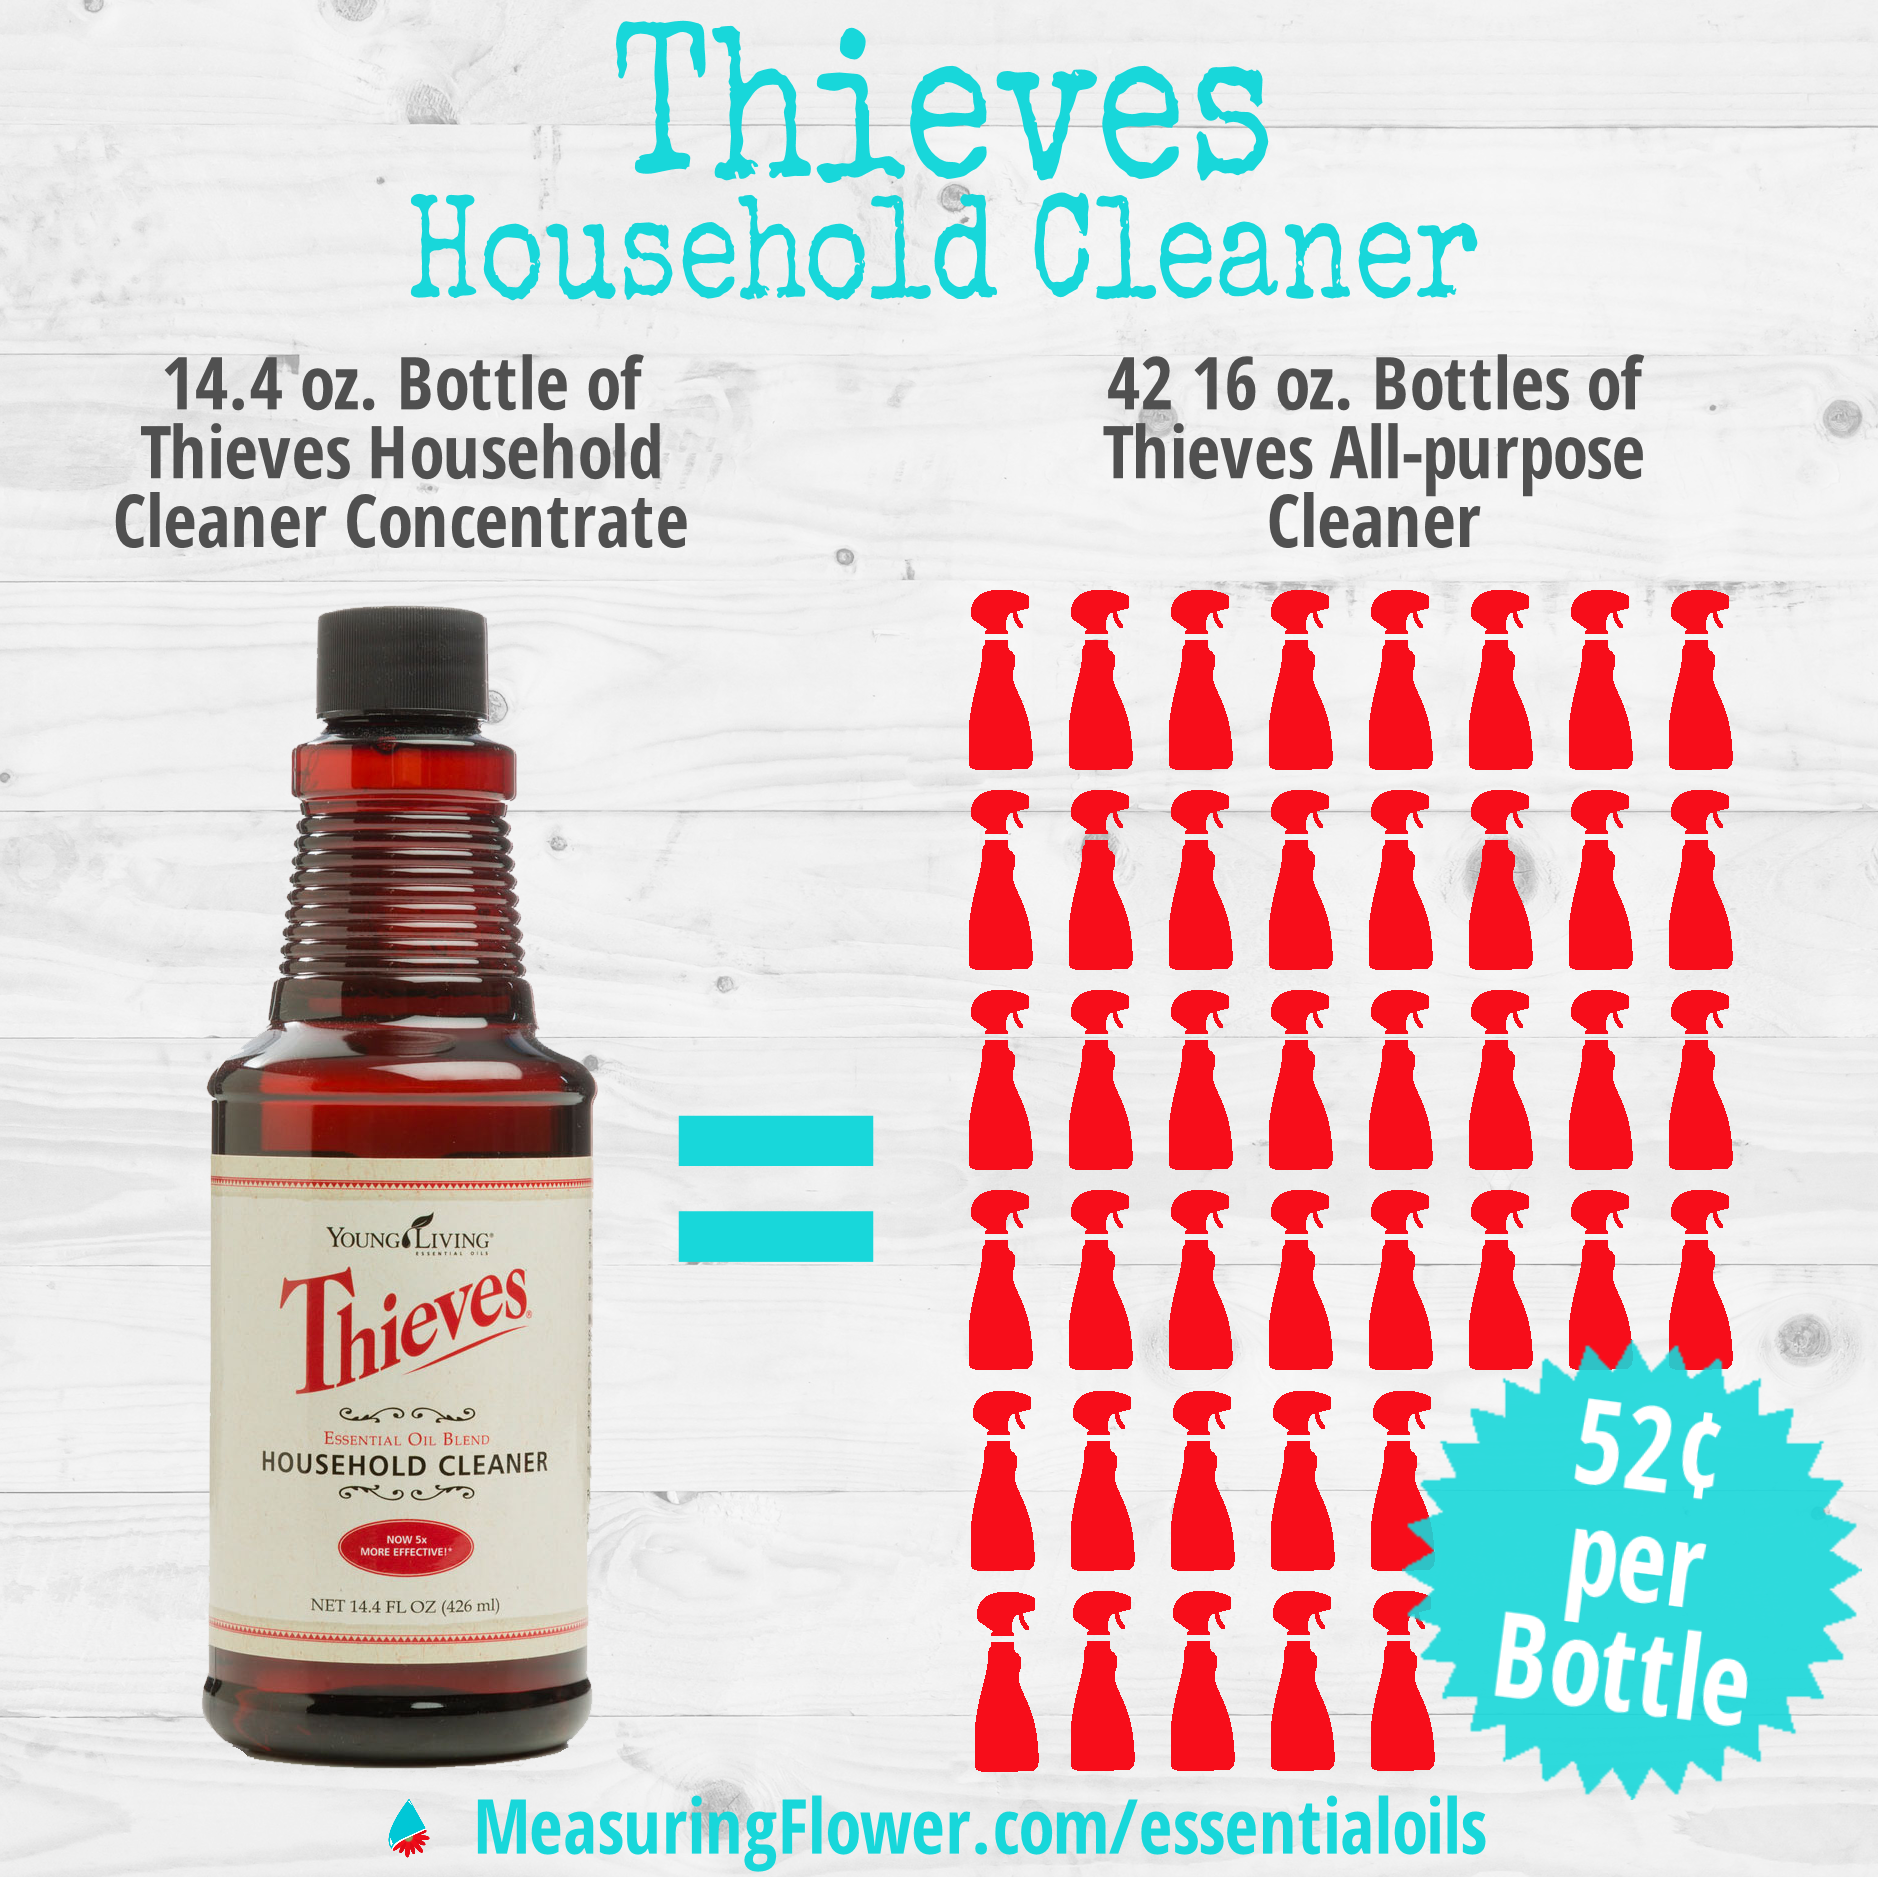 thieves-householder-cleaner-infographic